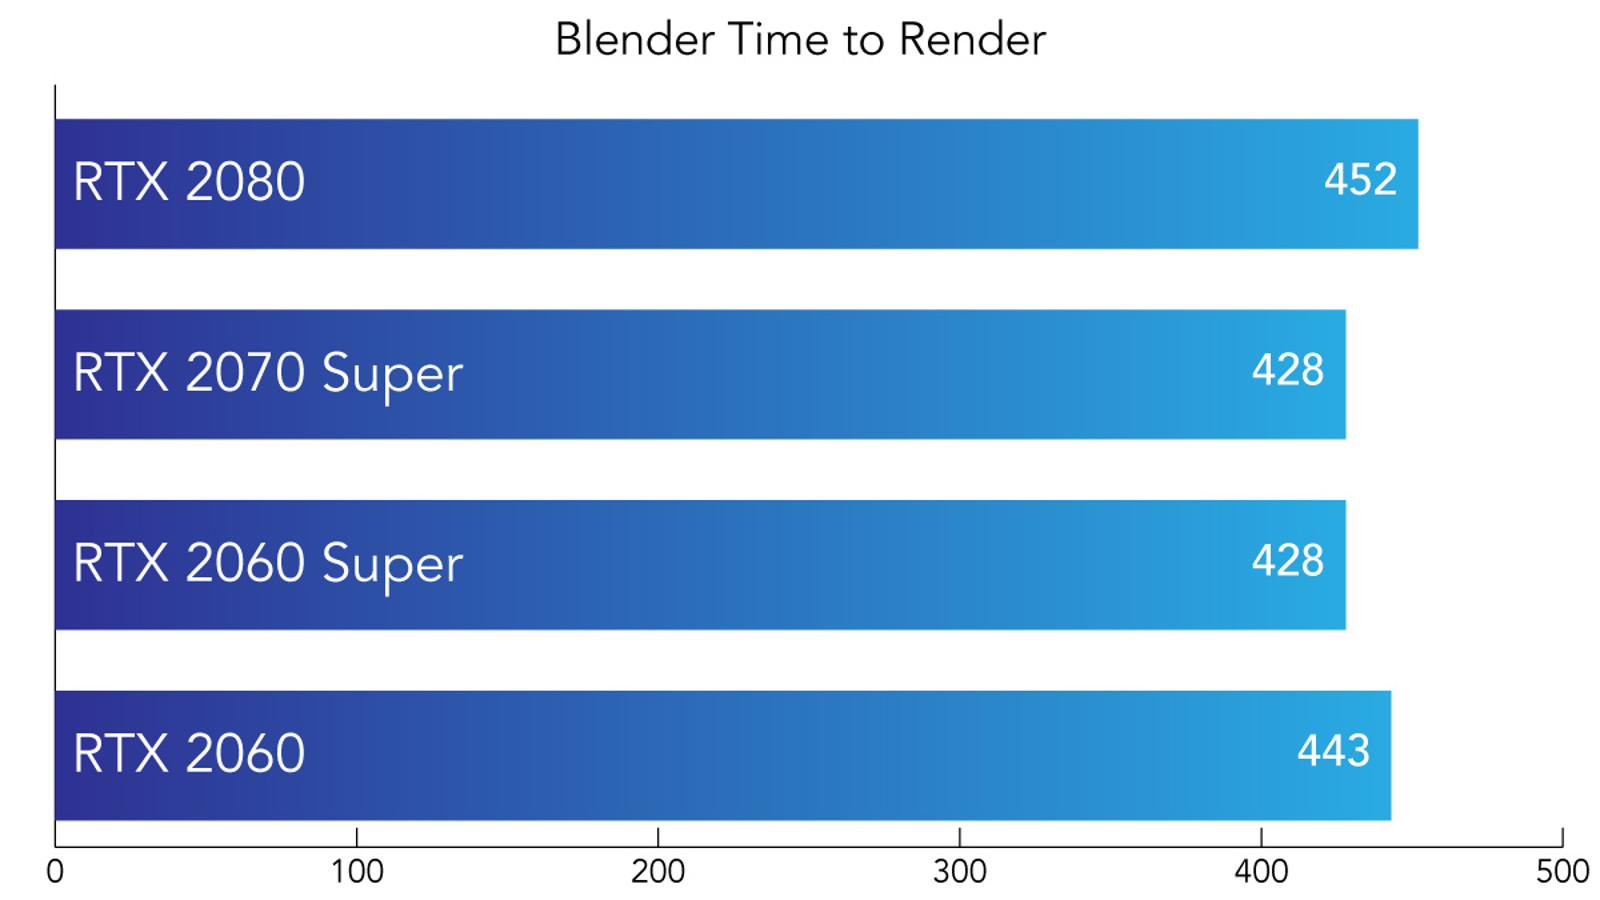 Time, in seconds, to render a file in Blender. Lower is better.